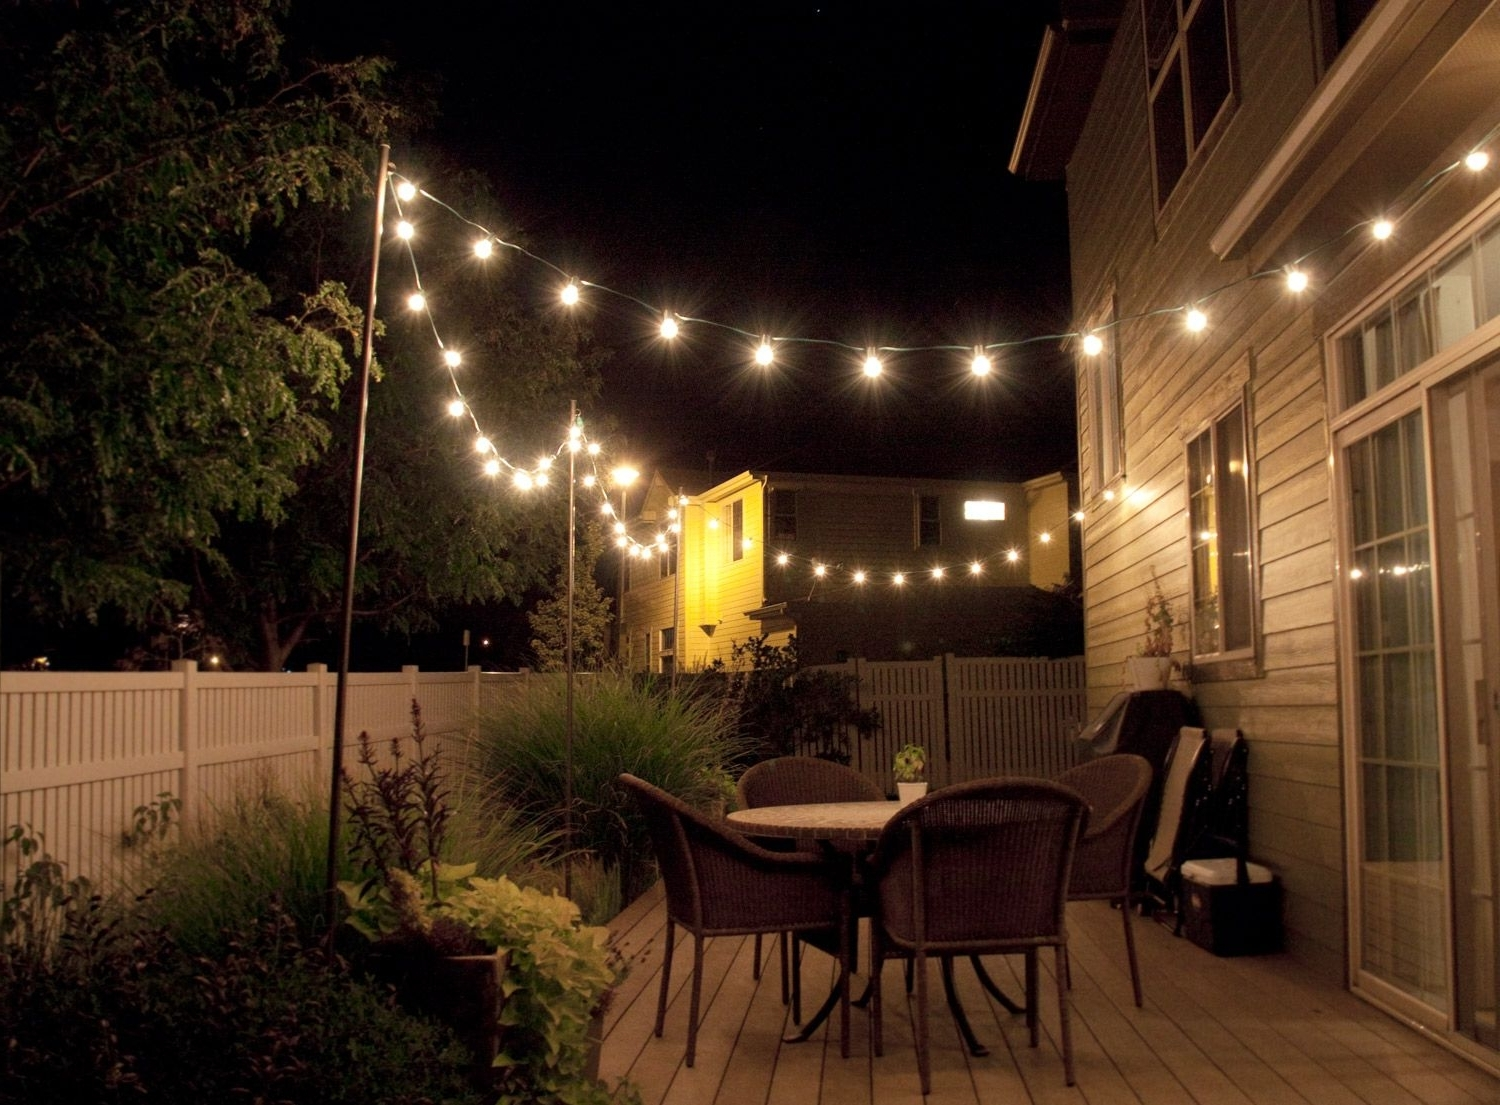 How To Make Inexpensive Poles To Hang String Lights On – Café Style Throughout Popular Hanging Outdoor Lights (View 6 of 20)